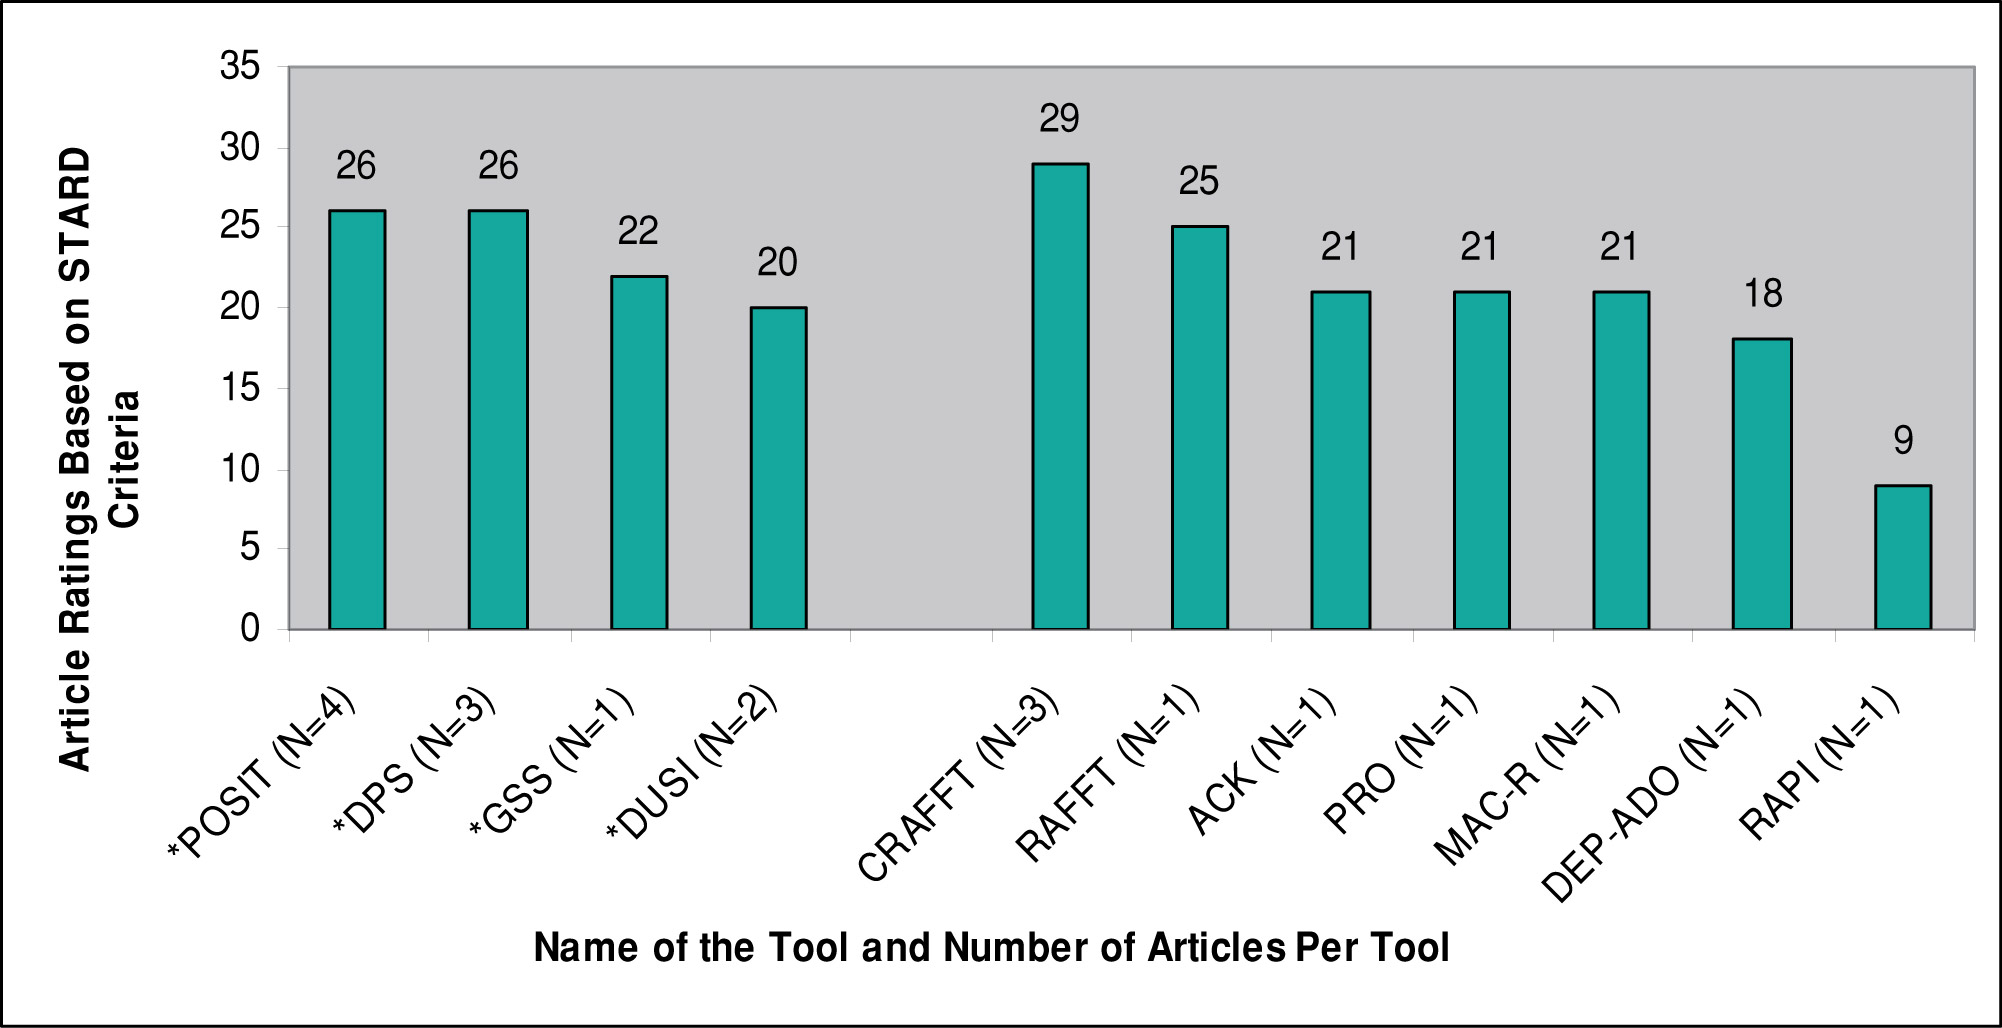 Figure 4: STARD Ratings for Articles on Substance Use-Related Tools